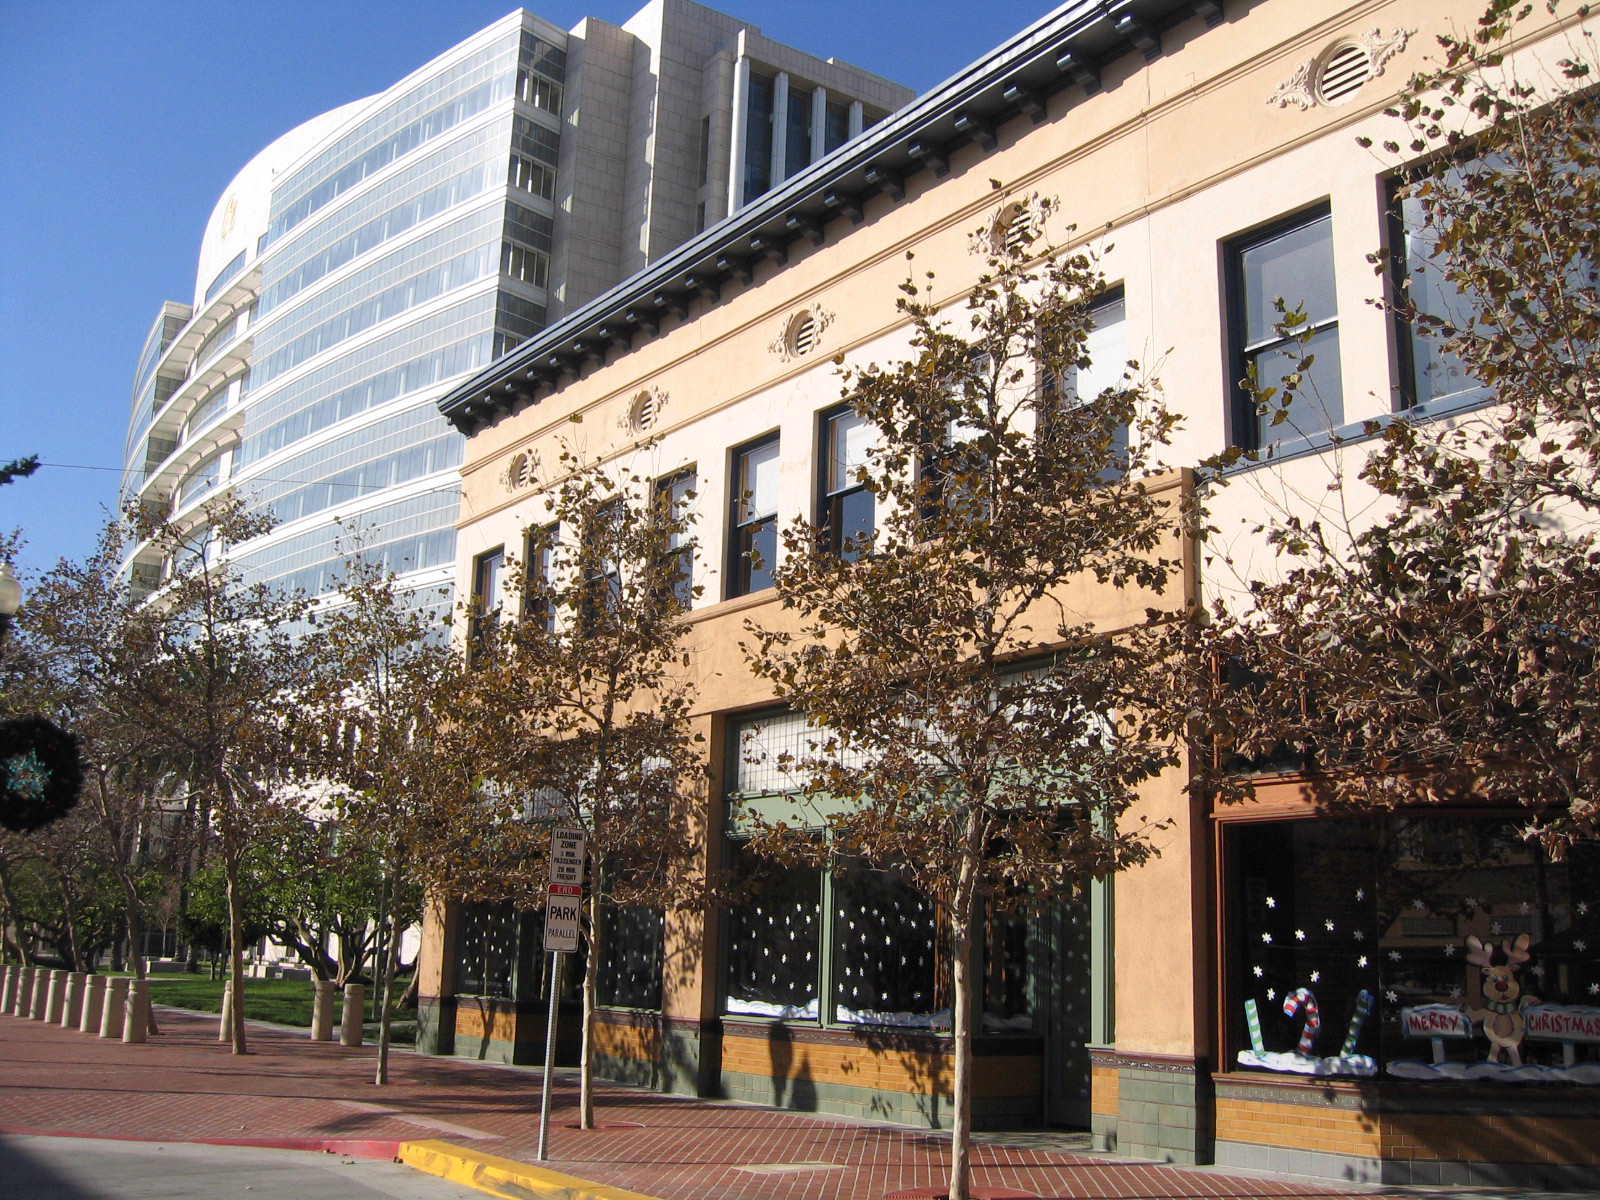 RSG and the Good Beer Company's building today, next to the Ronald Reagan Federal Building & Courthouse in downtown Santa Ana